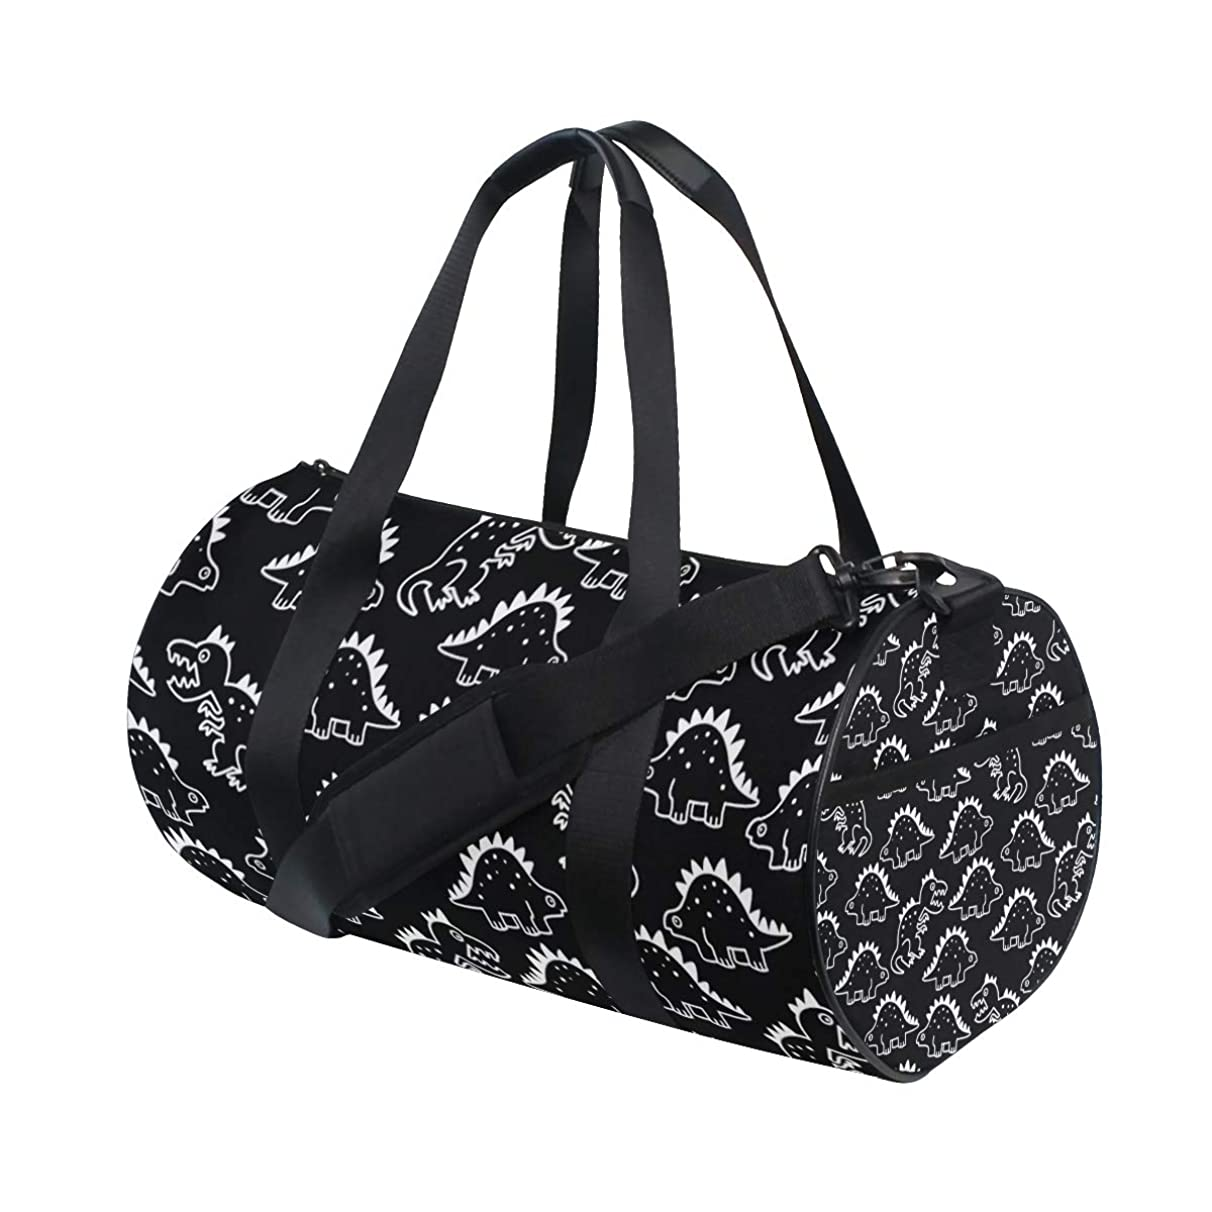 YCHY Cartoon-Dino-Chalkboard-Seamless-Repeat-Wallpaper-222176899 Barrel Duffel Bag Sports Yoga Gym Fitness Bag Travel Weekender Bags for Men and Women